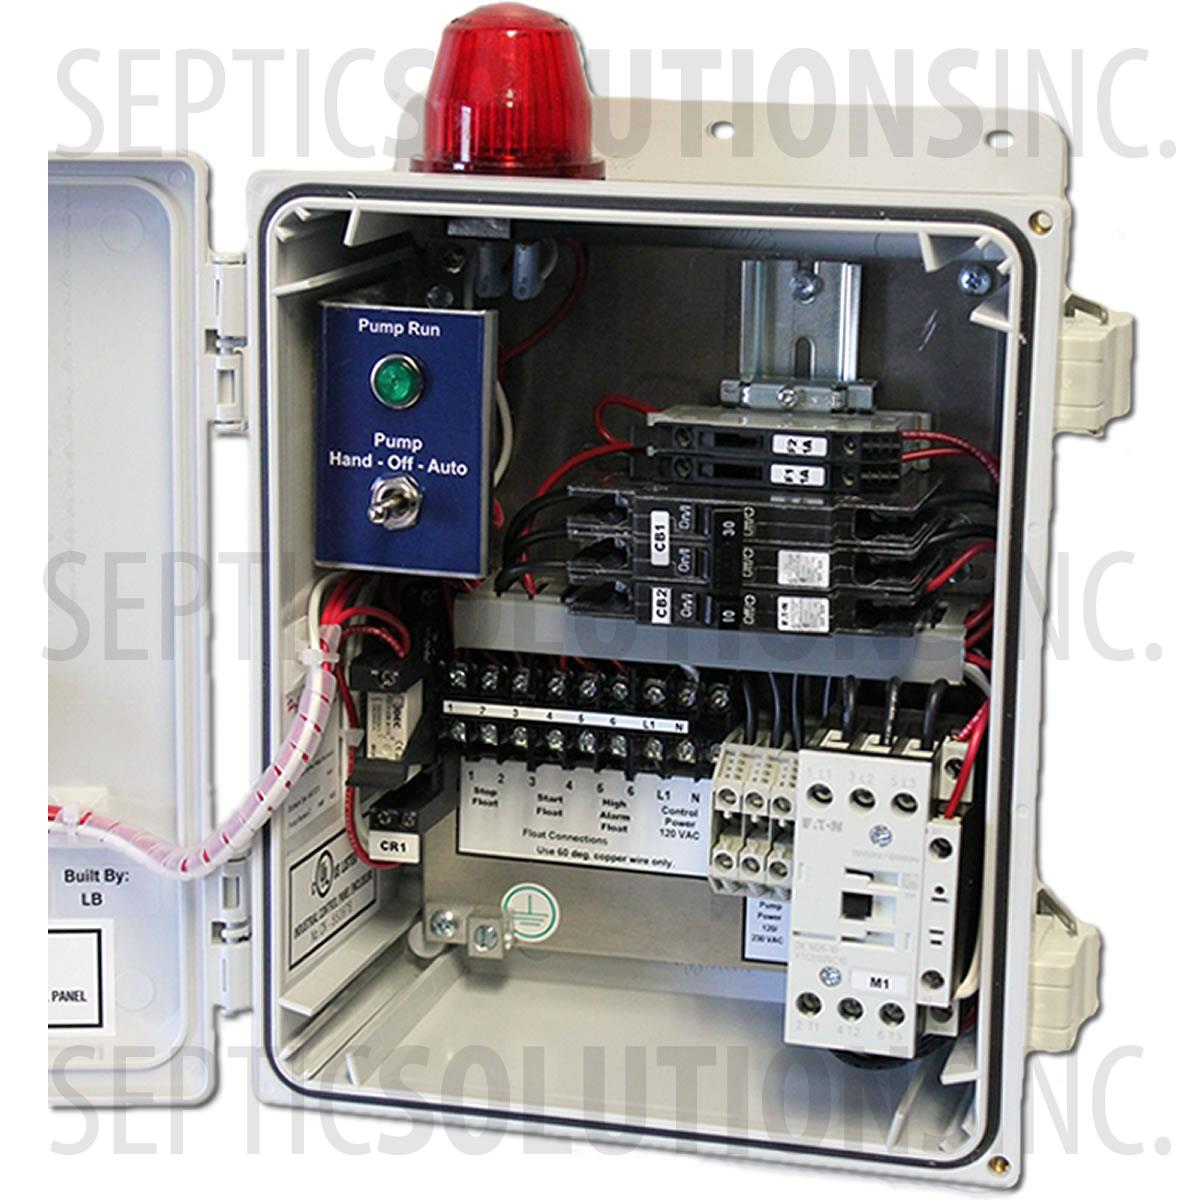 Lift Station Wiring 3 Phase Breaker Panel Great Installation Of Diagram Circuit Box Simplex Sewage Pump Control Panels Free Same Day Shipping Rh Septicsolutions Com Mine For Furnases